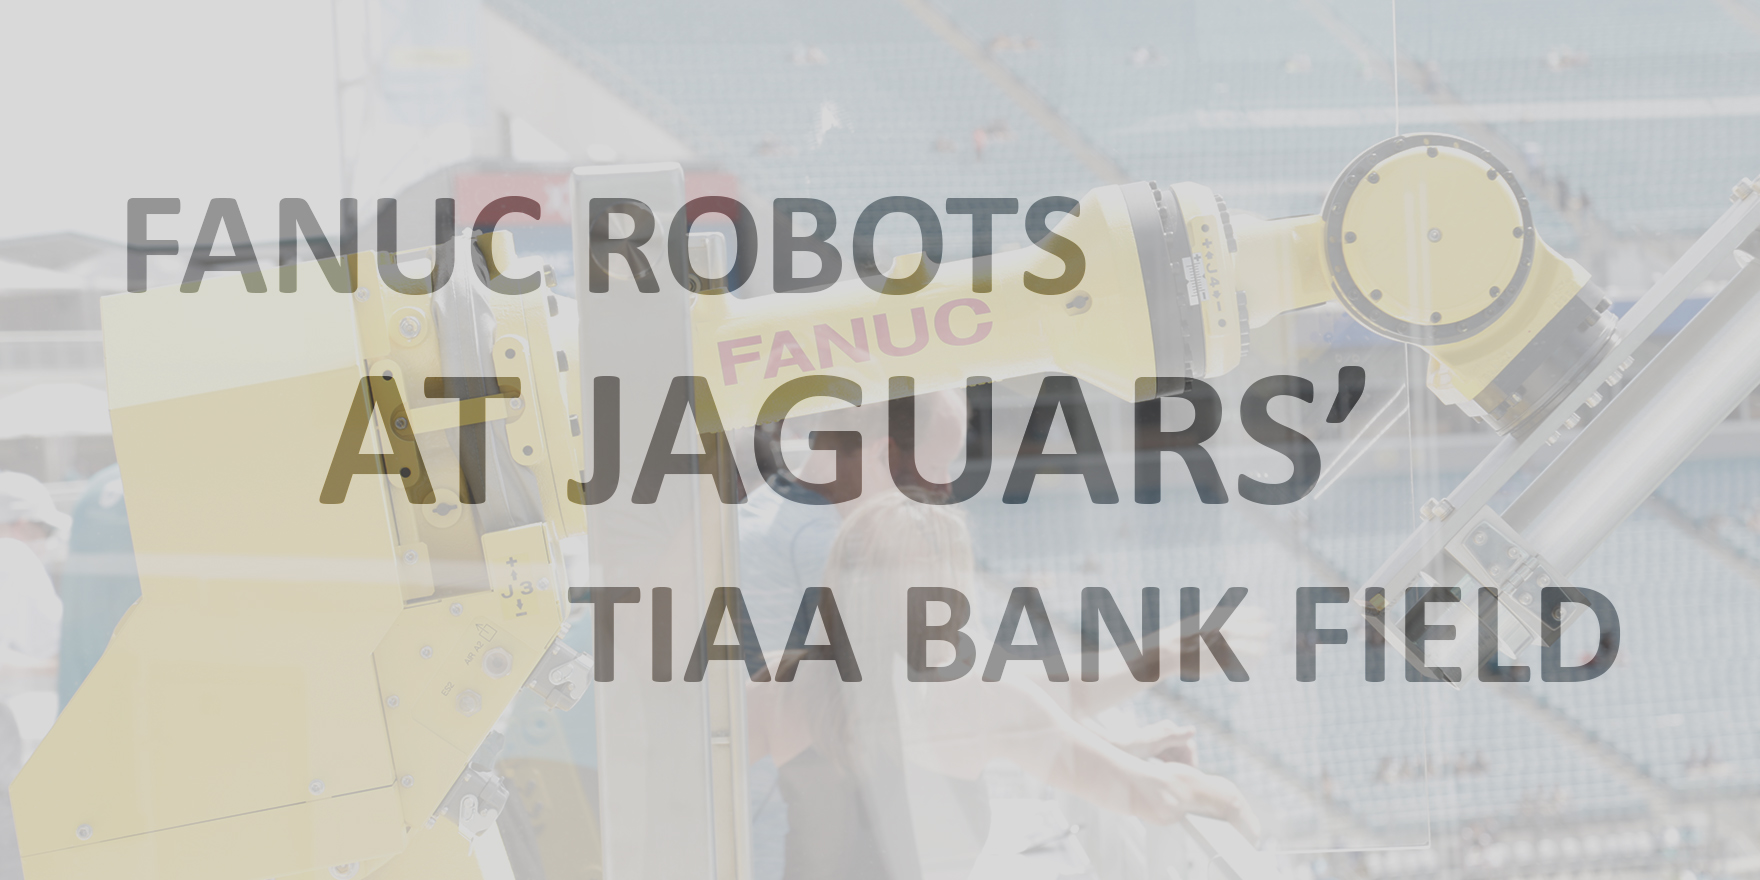 Look for FANUC Robots at Jacksonville Jaguars' TIAA Bank Field